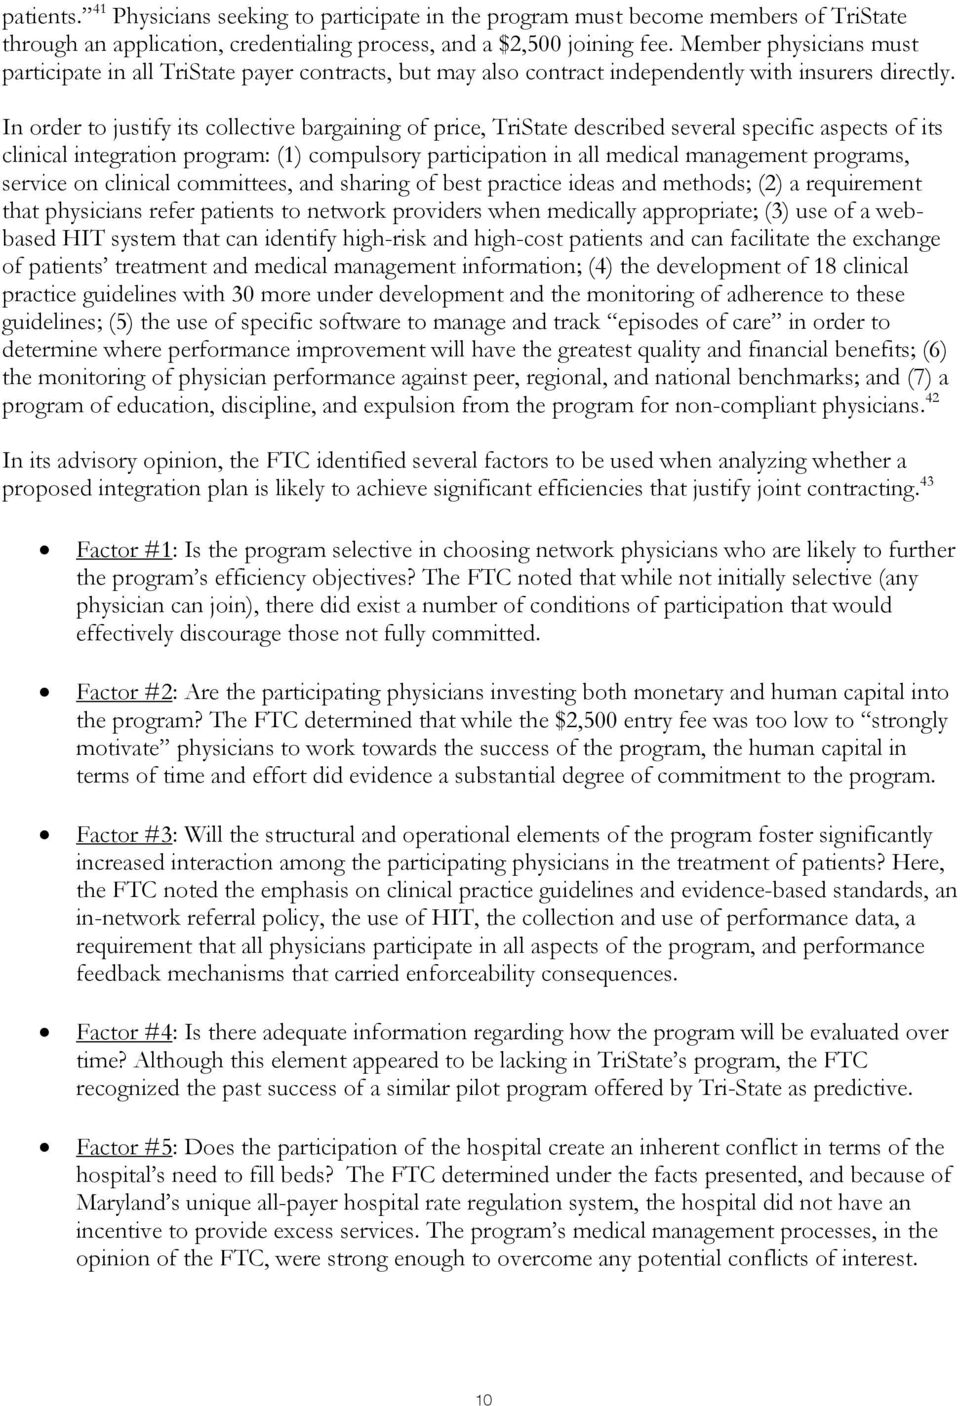 In order to justify its collective bargaining of price, TriState described several specific aspects of its clinical integration program: (1) compulsory participation in all medical management